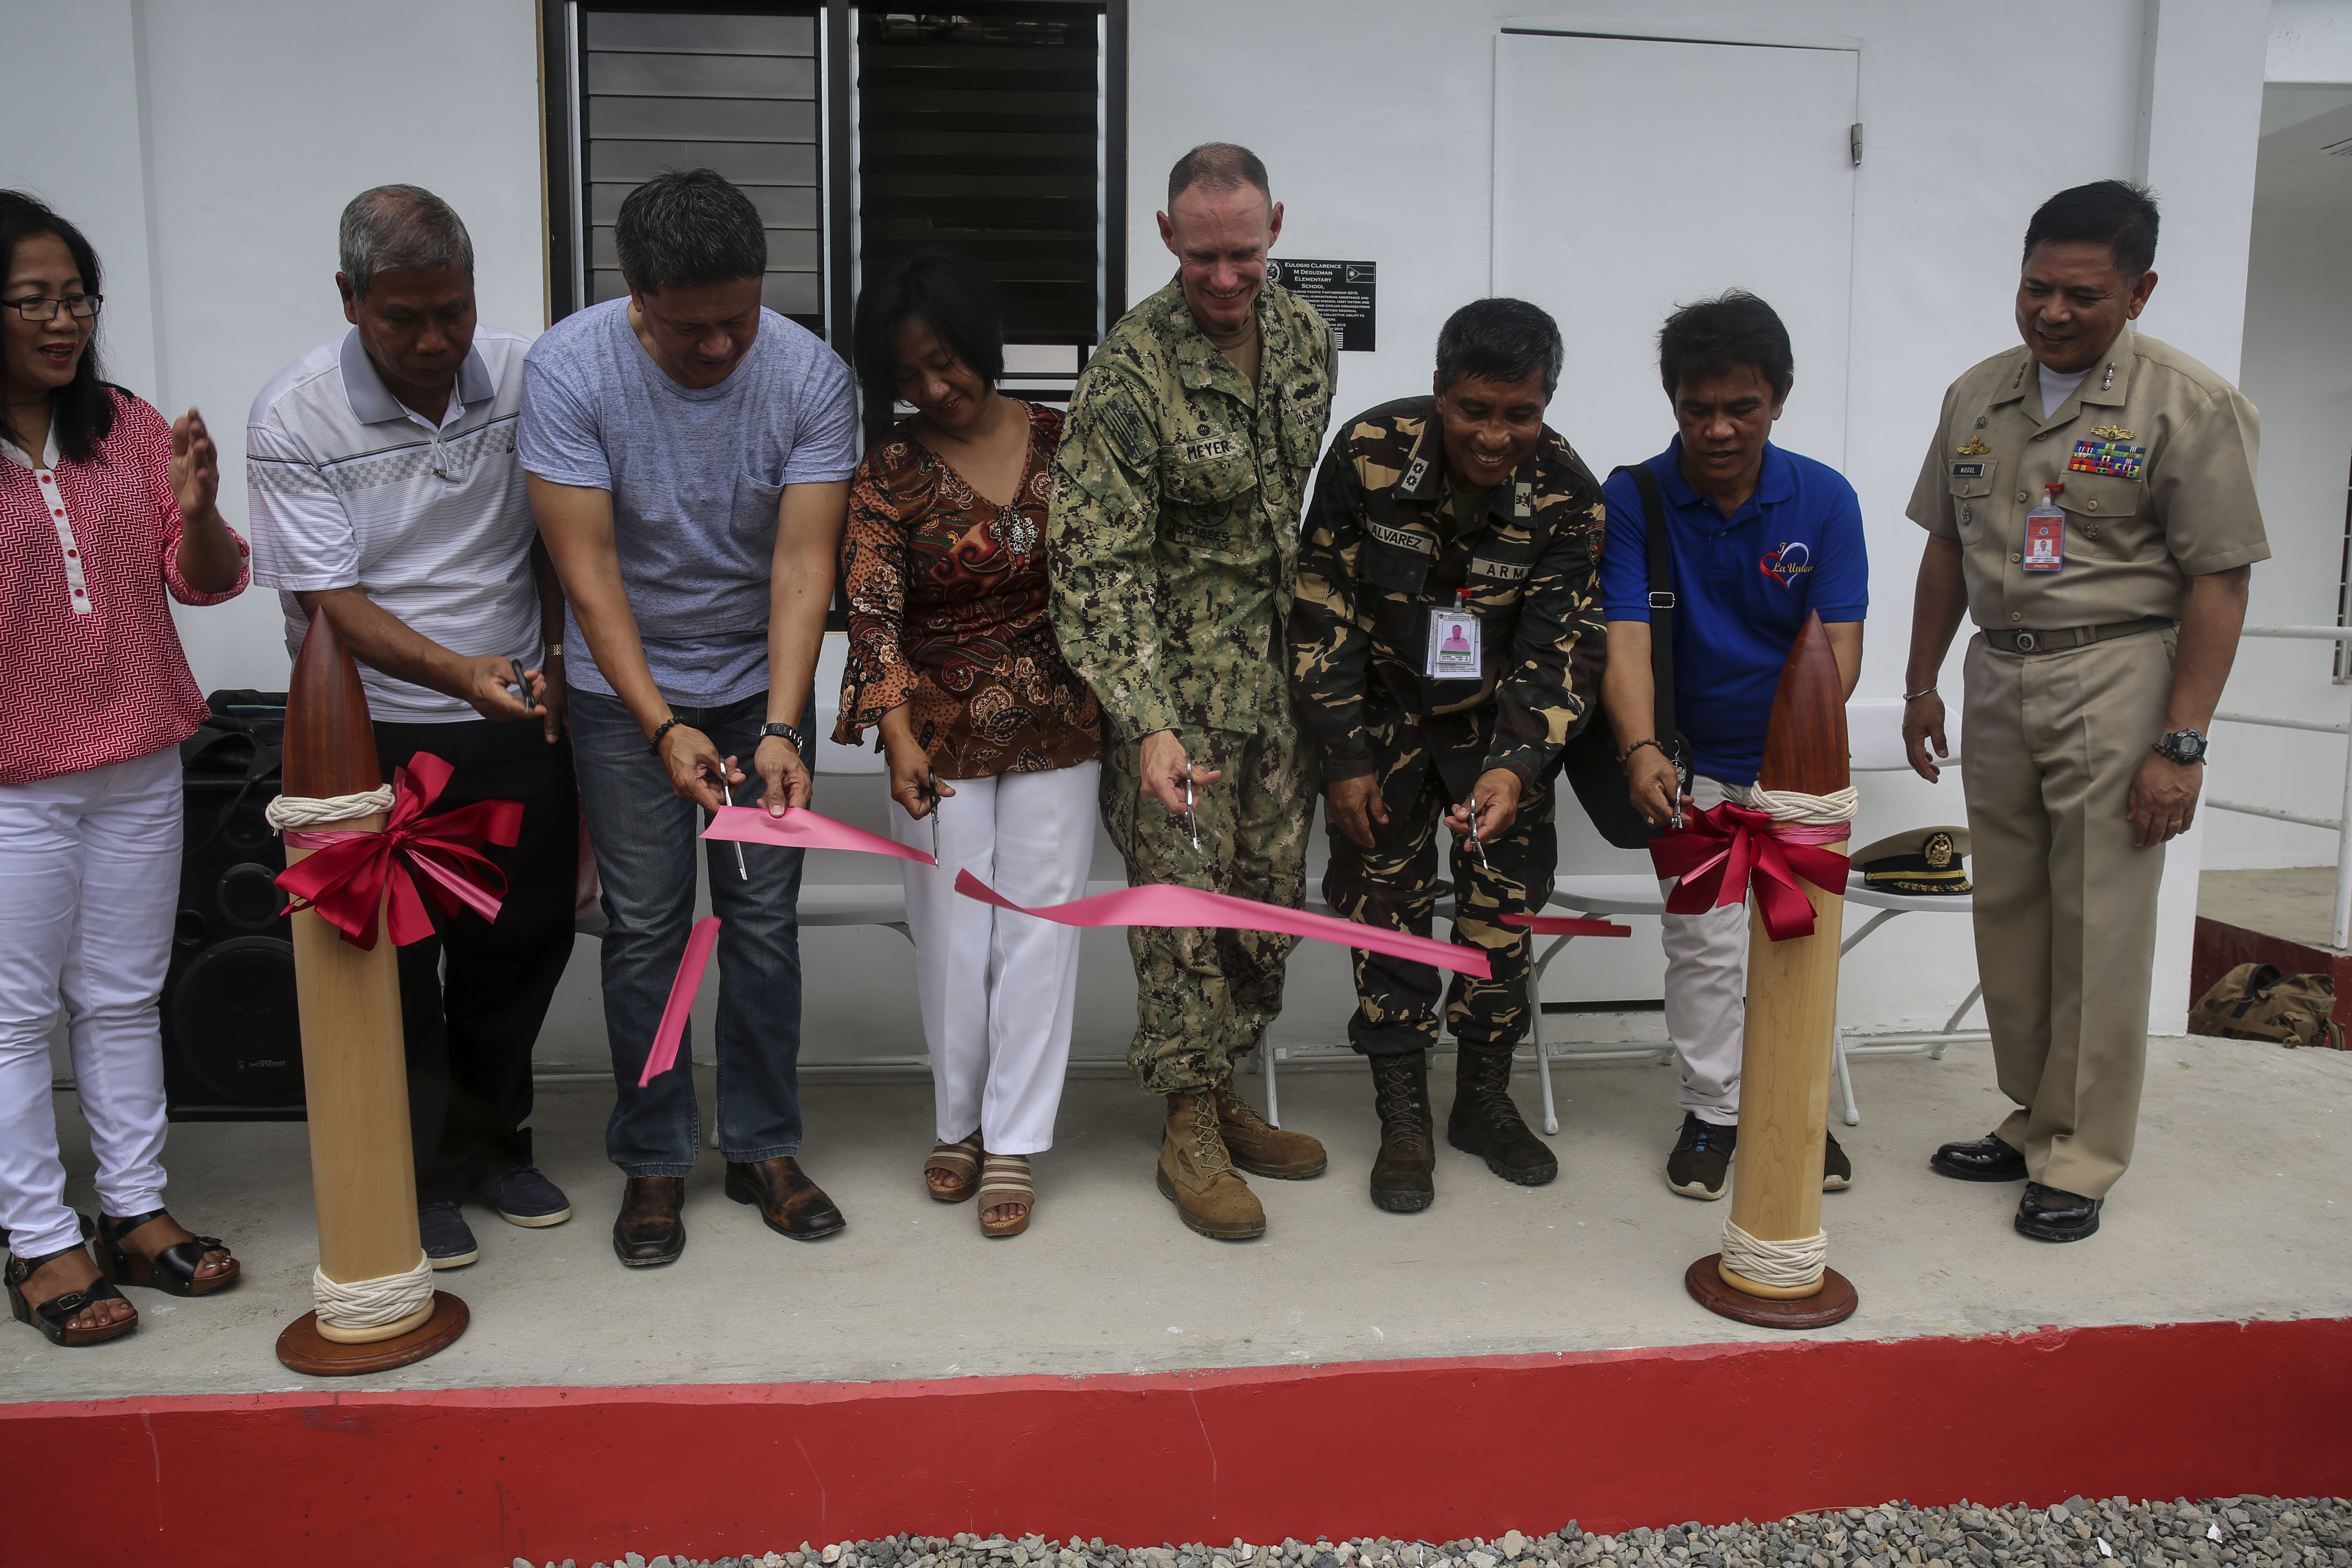 Partnership; seabees; Navy; renovation; #PP15 Date 10 August 2015 Source https://www.dvidshub.net/image/2114366/seabees-finish-renovation-schools-philippines